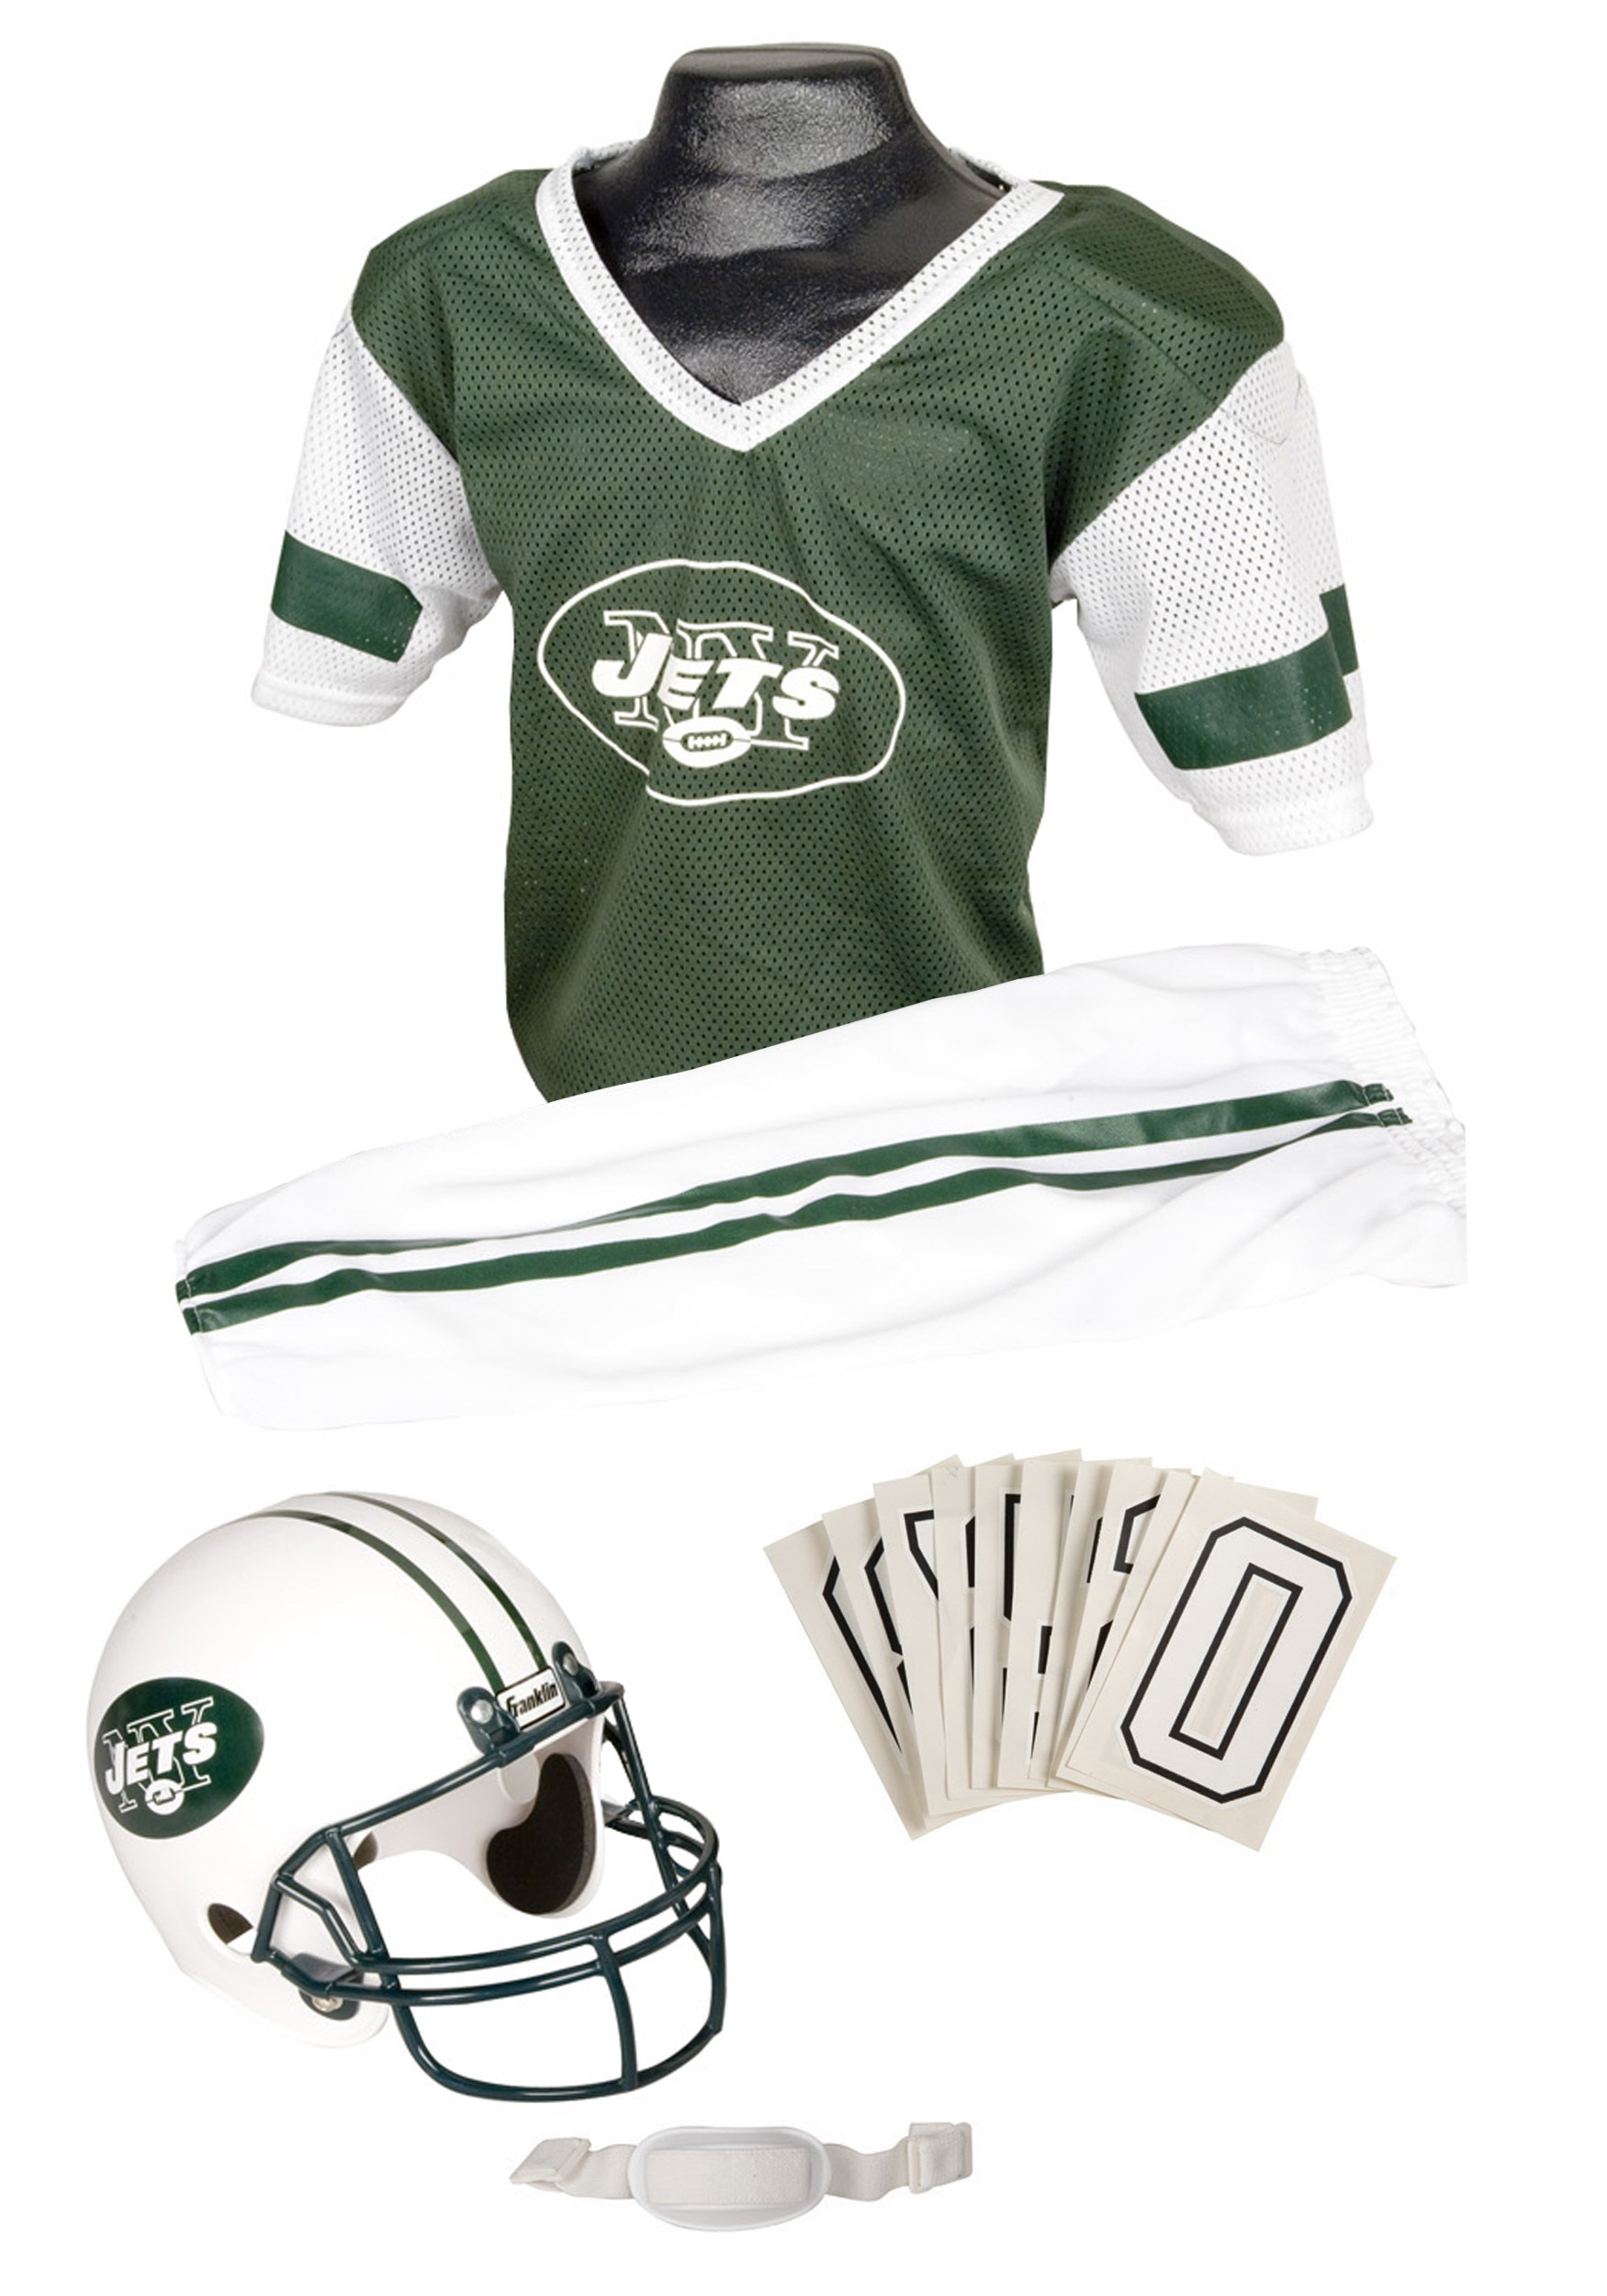 NFL Jets Uniform Costume FA15700F25